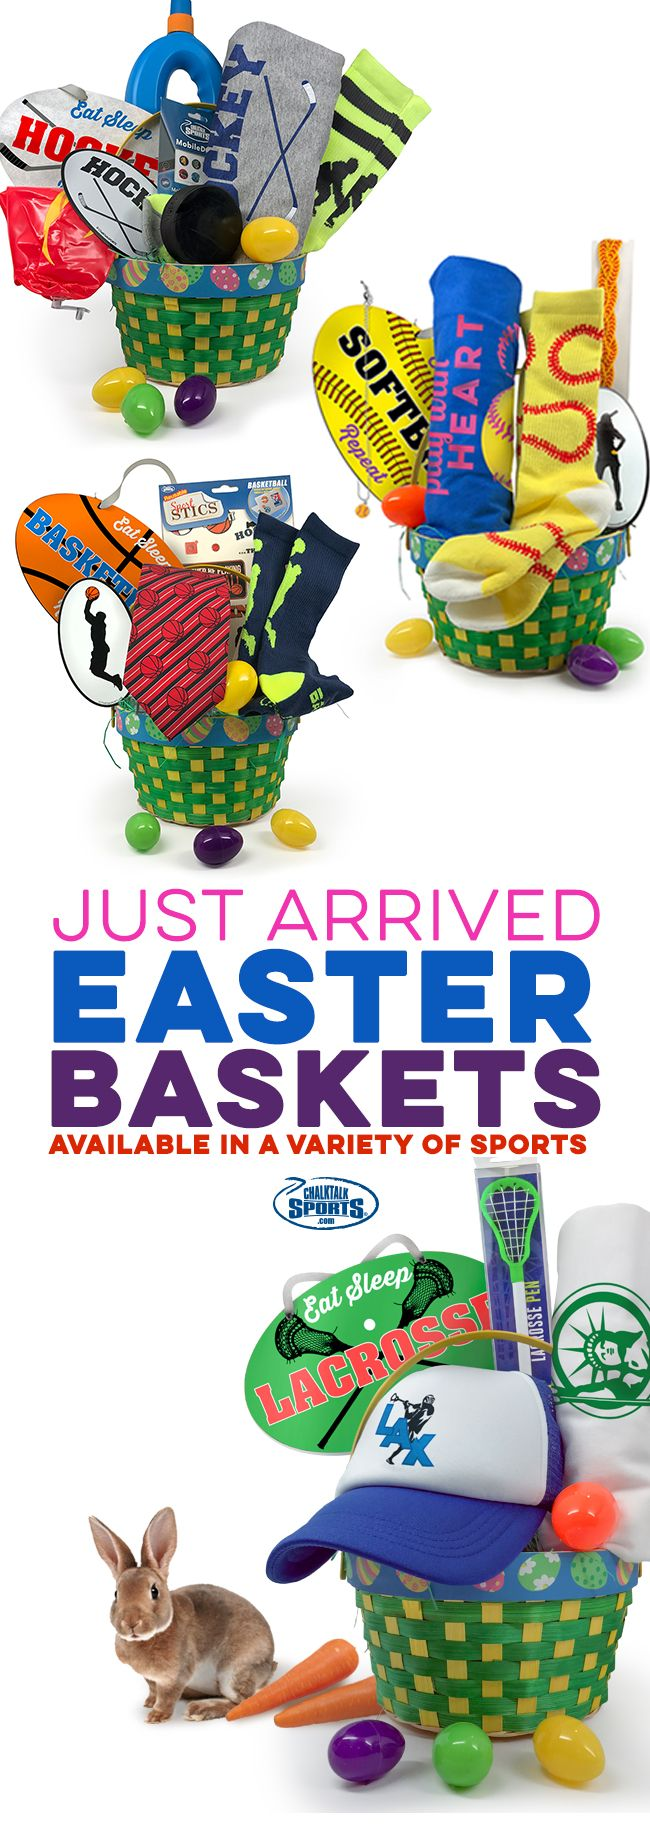 Easter baskets for your sport find ready to ship easter baskets easter baskets for your sport find ready to ship easter baskets pre filled with awesome goodies and gifts in your favorite sports easter basket prices are negle Images